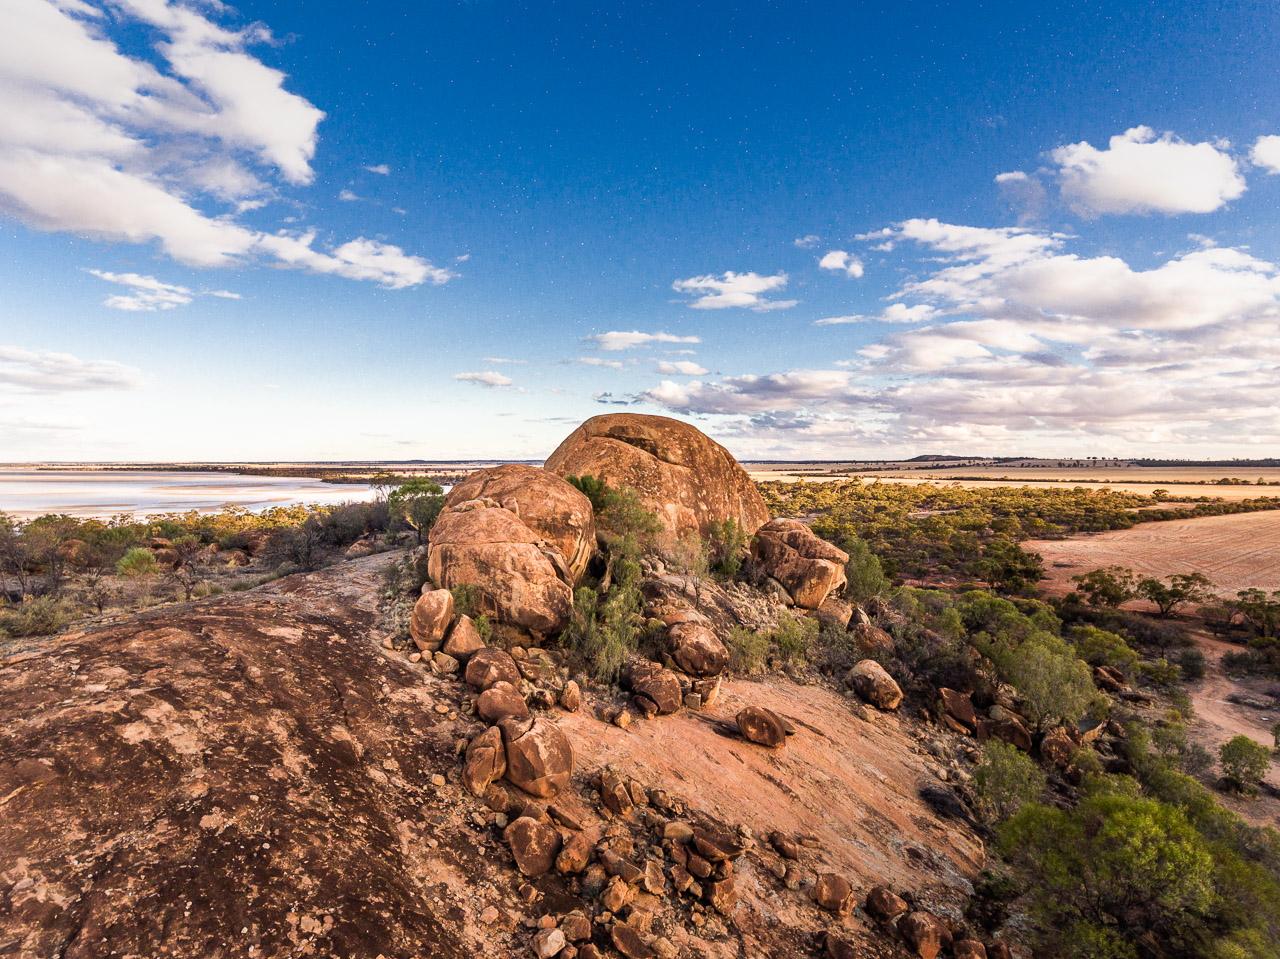 Drone image of Eaglestone Rock, also known as Turtle Rock, and Lake Brown salt lake